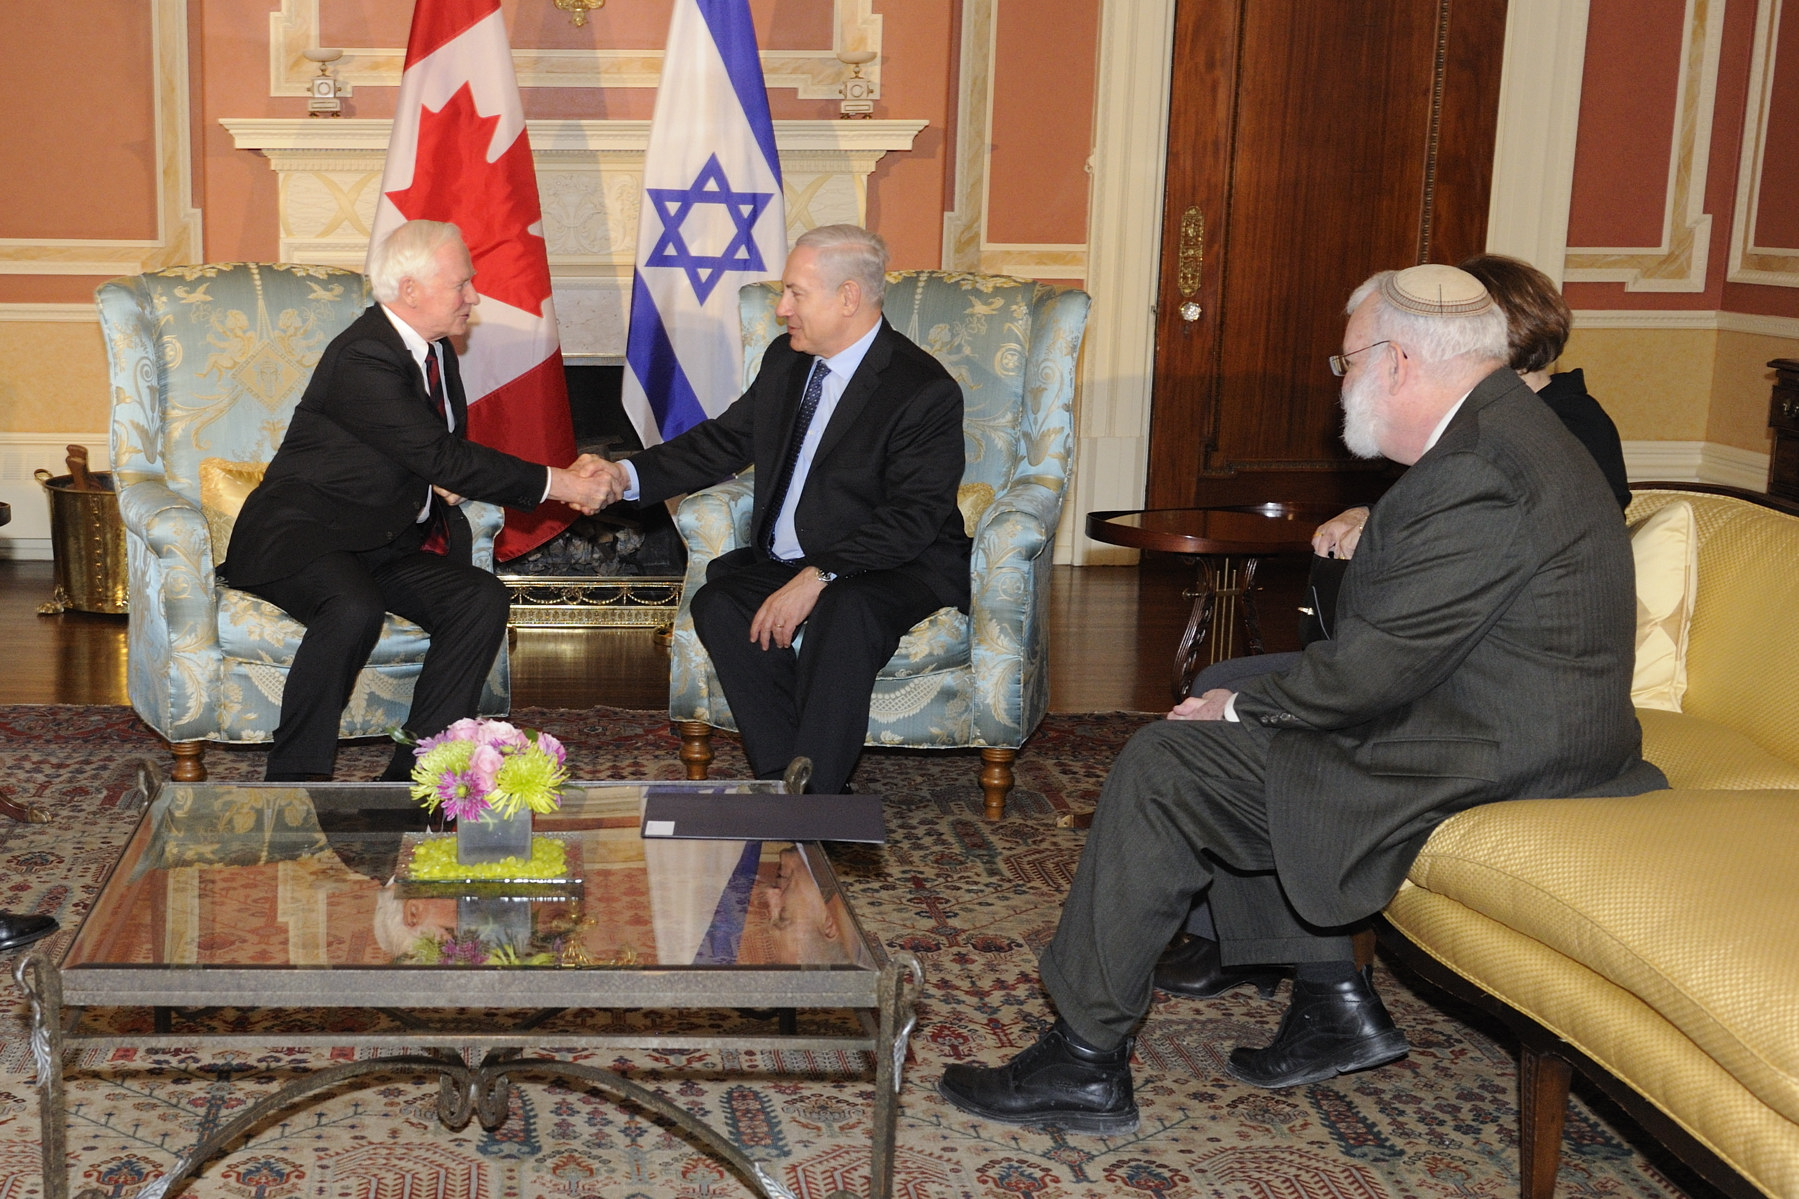 The Governor General and the Prime Minister of Israel spoke for a few minutes. Mr. Ron Dermer, Senior Advisor to the Prime Minister (far right), was also attending the meeting.